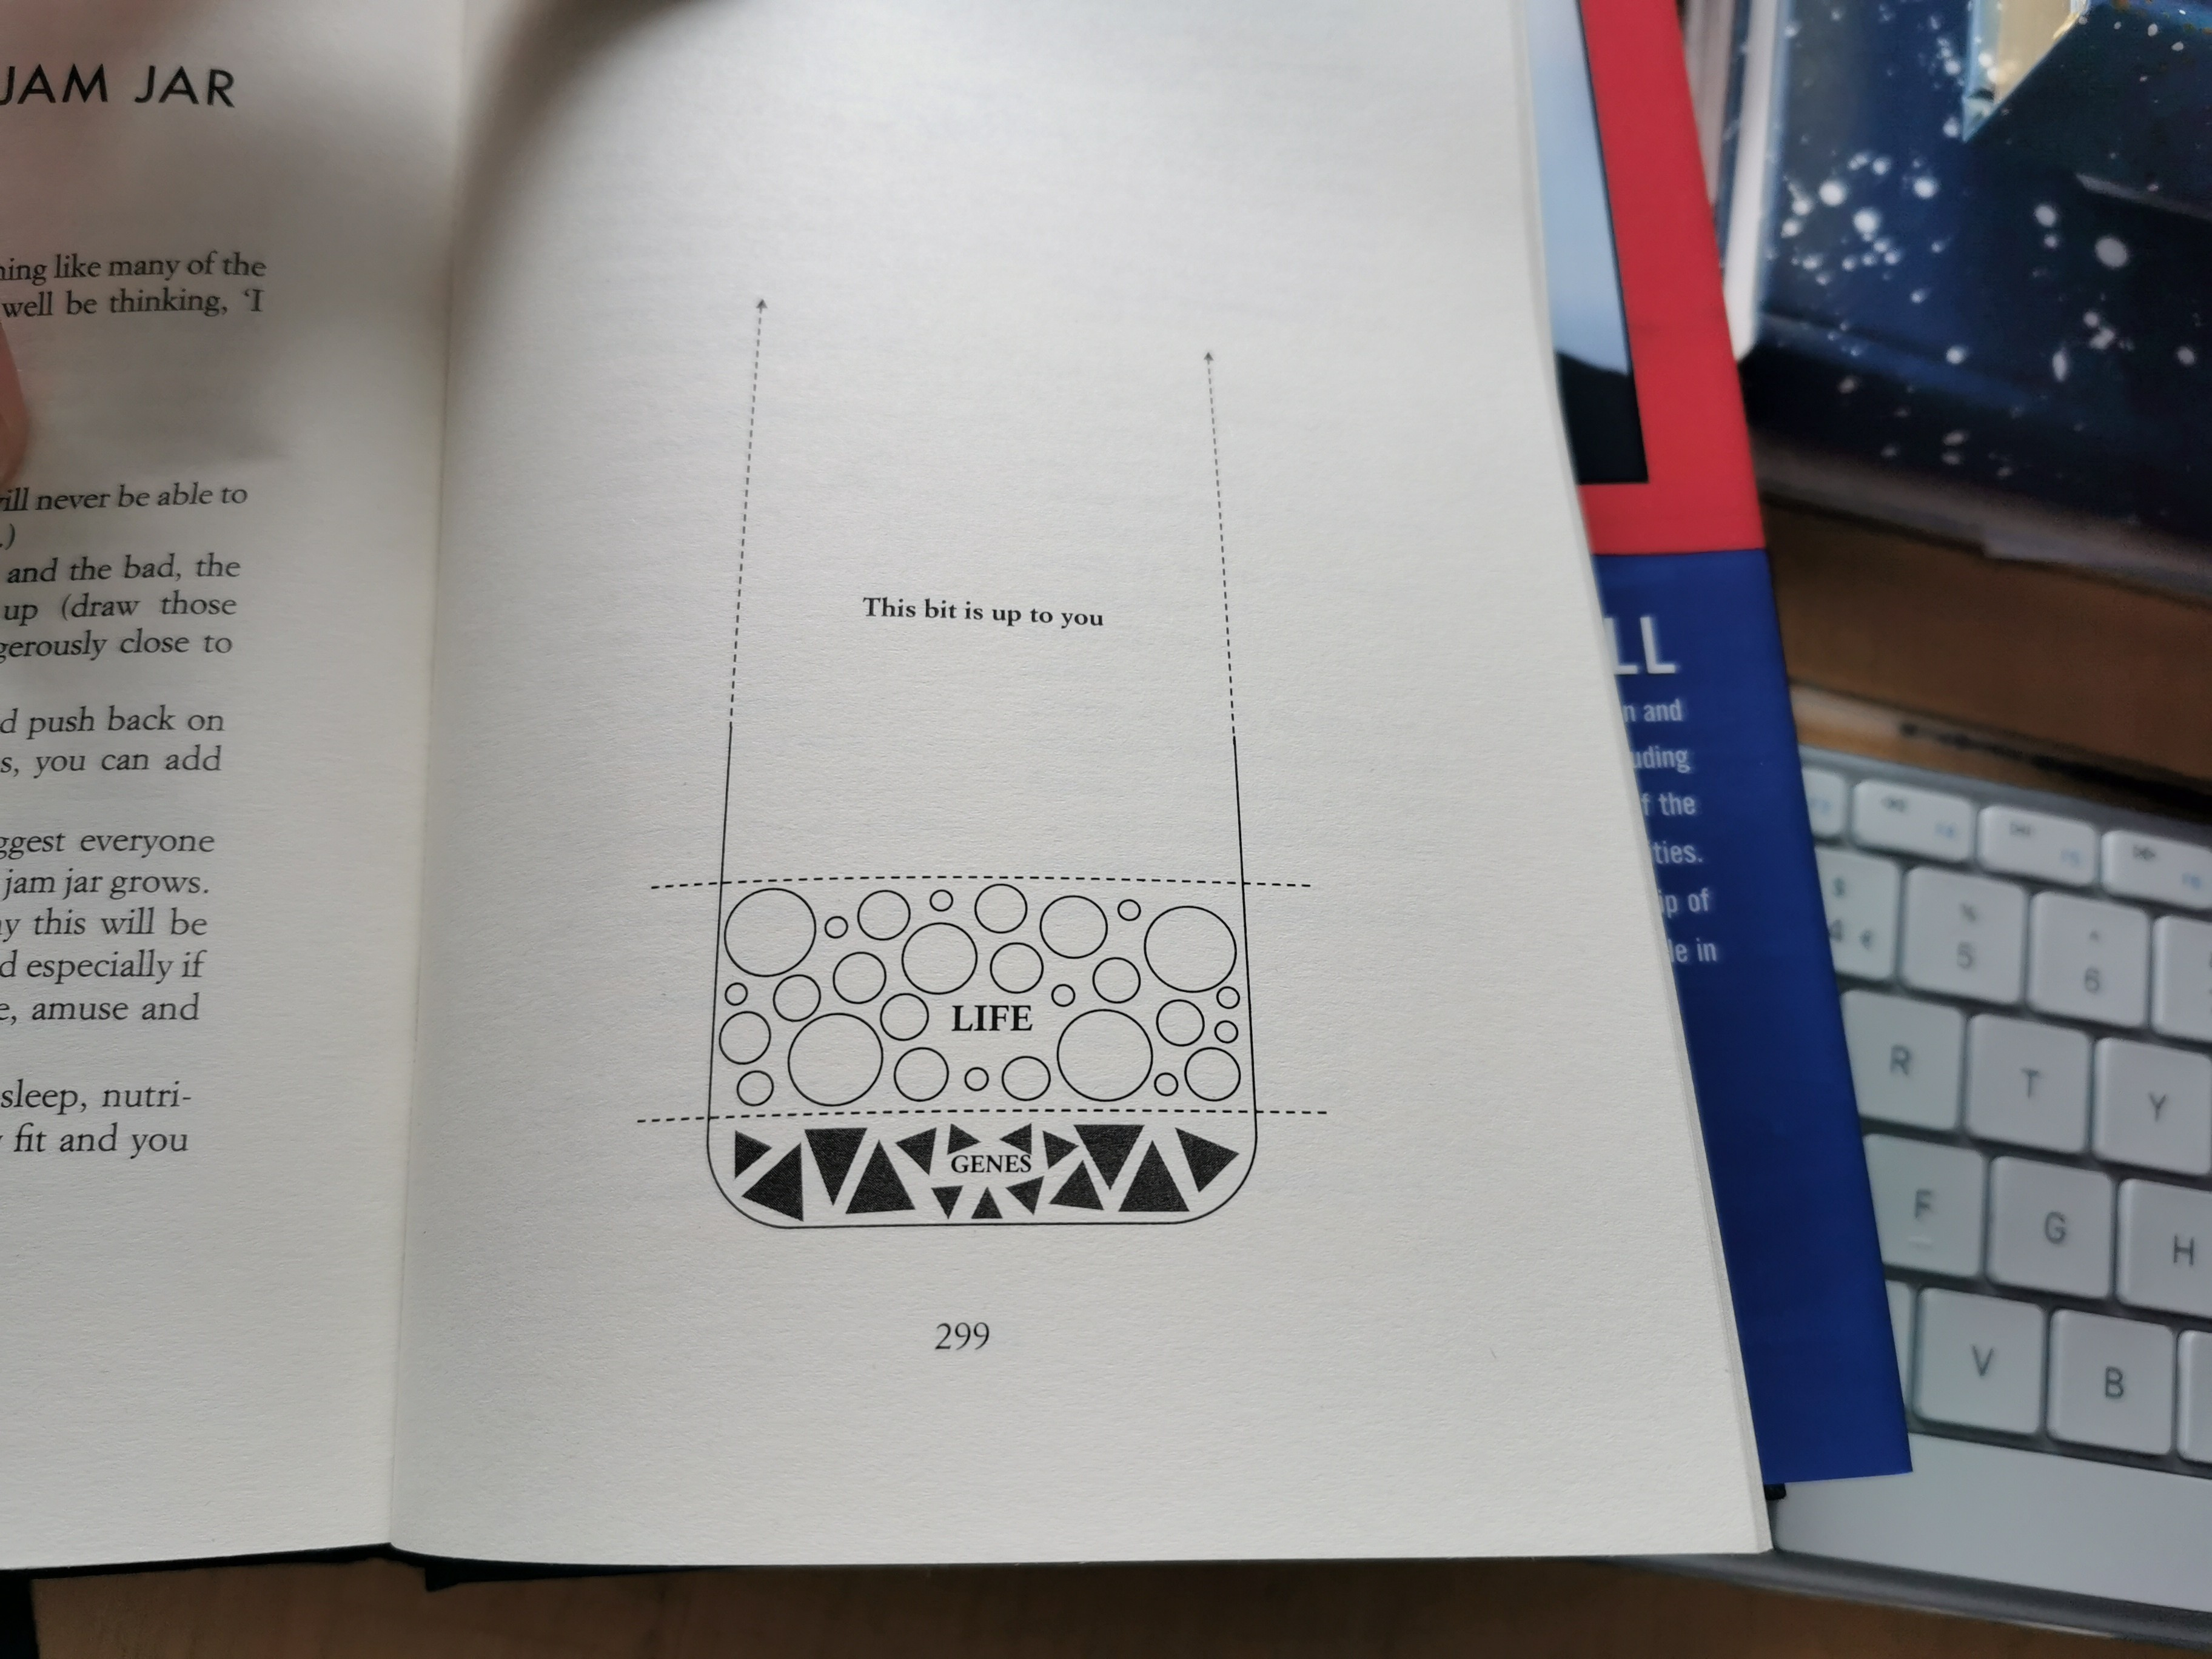 A book page showing a diagram of mental health coping strategies